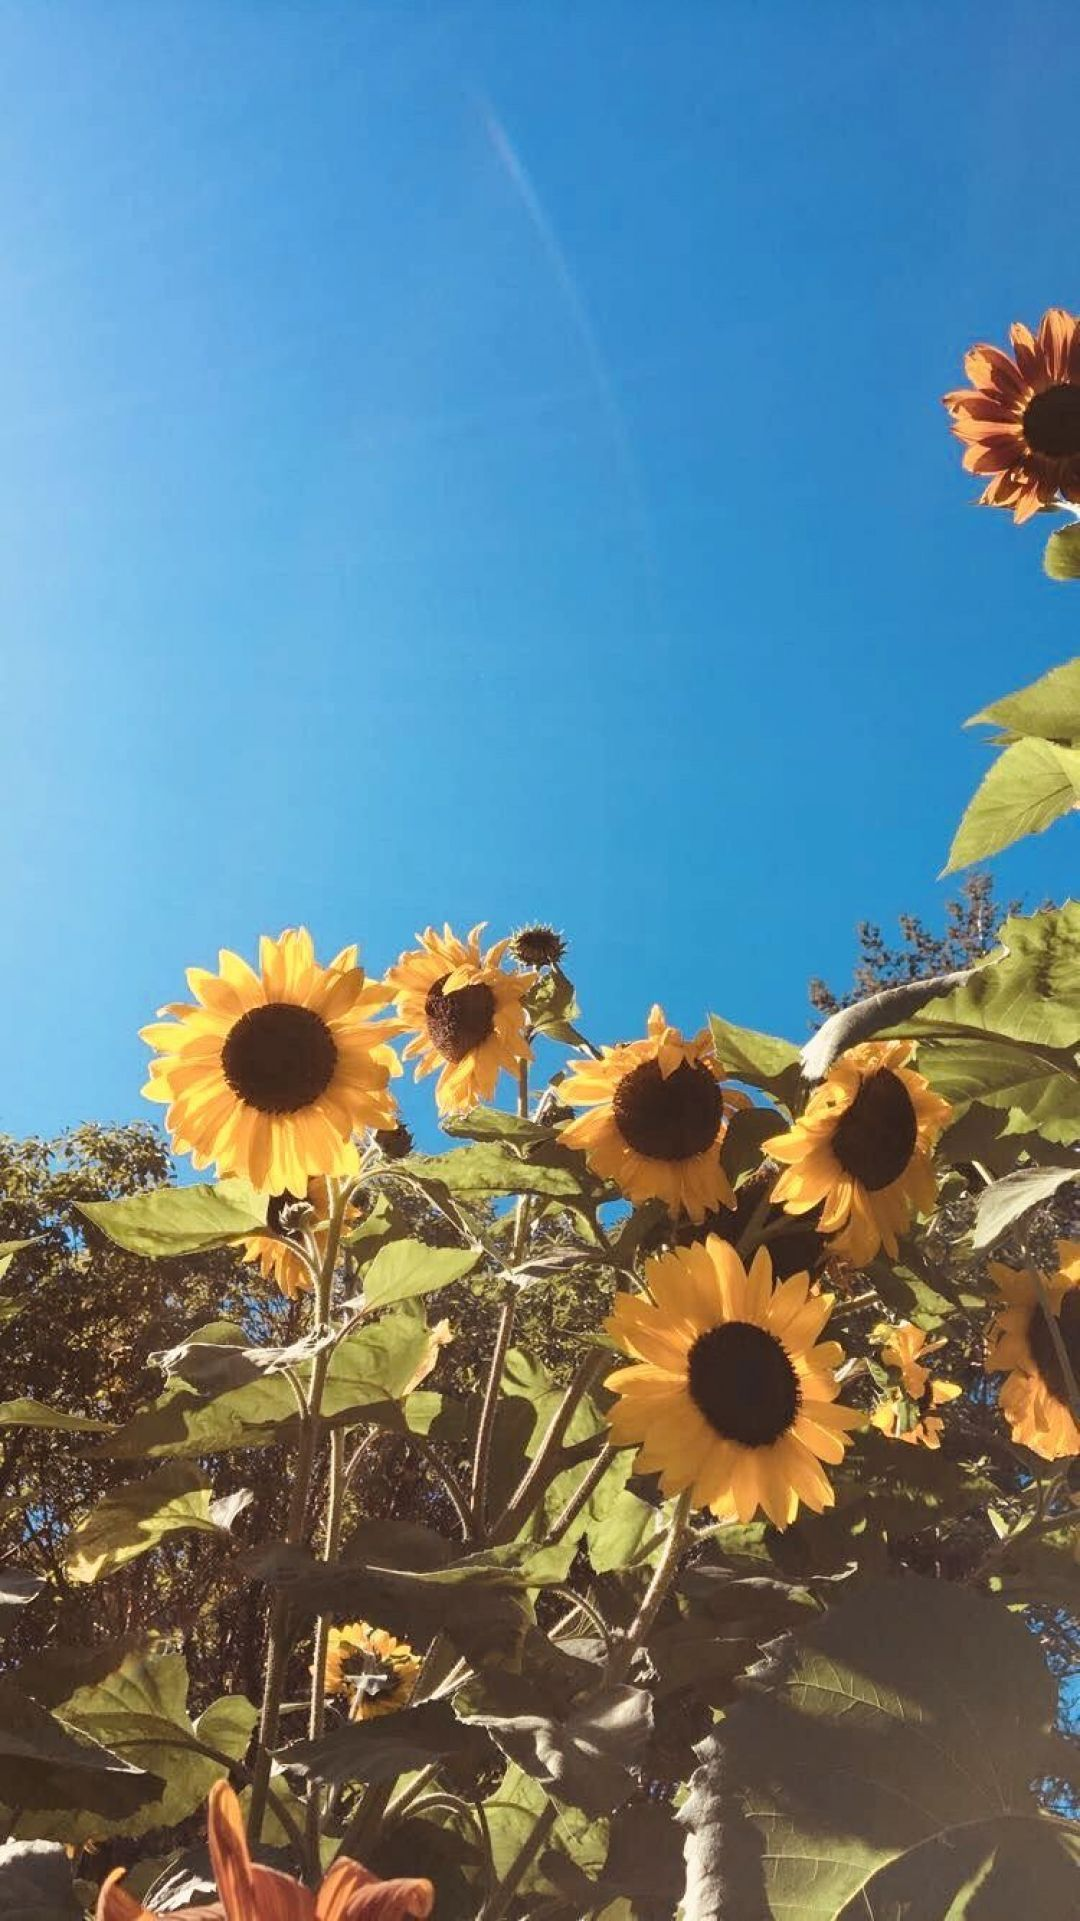 Yellow Sunflowers Android Iphone Desktop Hd Backgrounds Wallpapers 1080p 4k 1204 Sunflower Wallpaper Aesthetic Wallpapers Sunflower Iphone Wallpaper